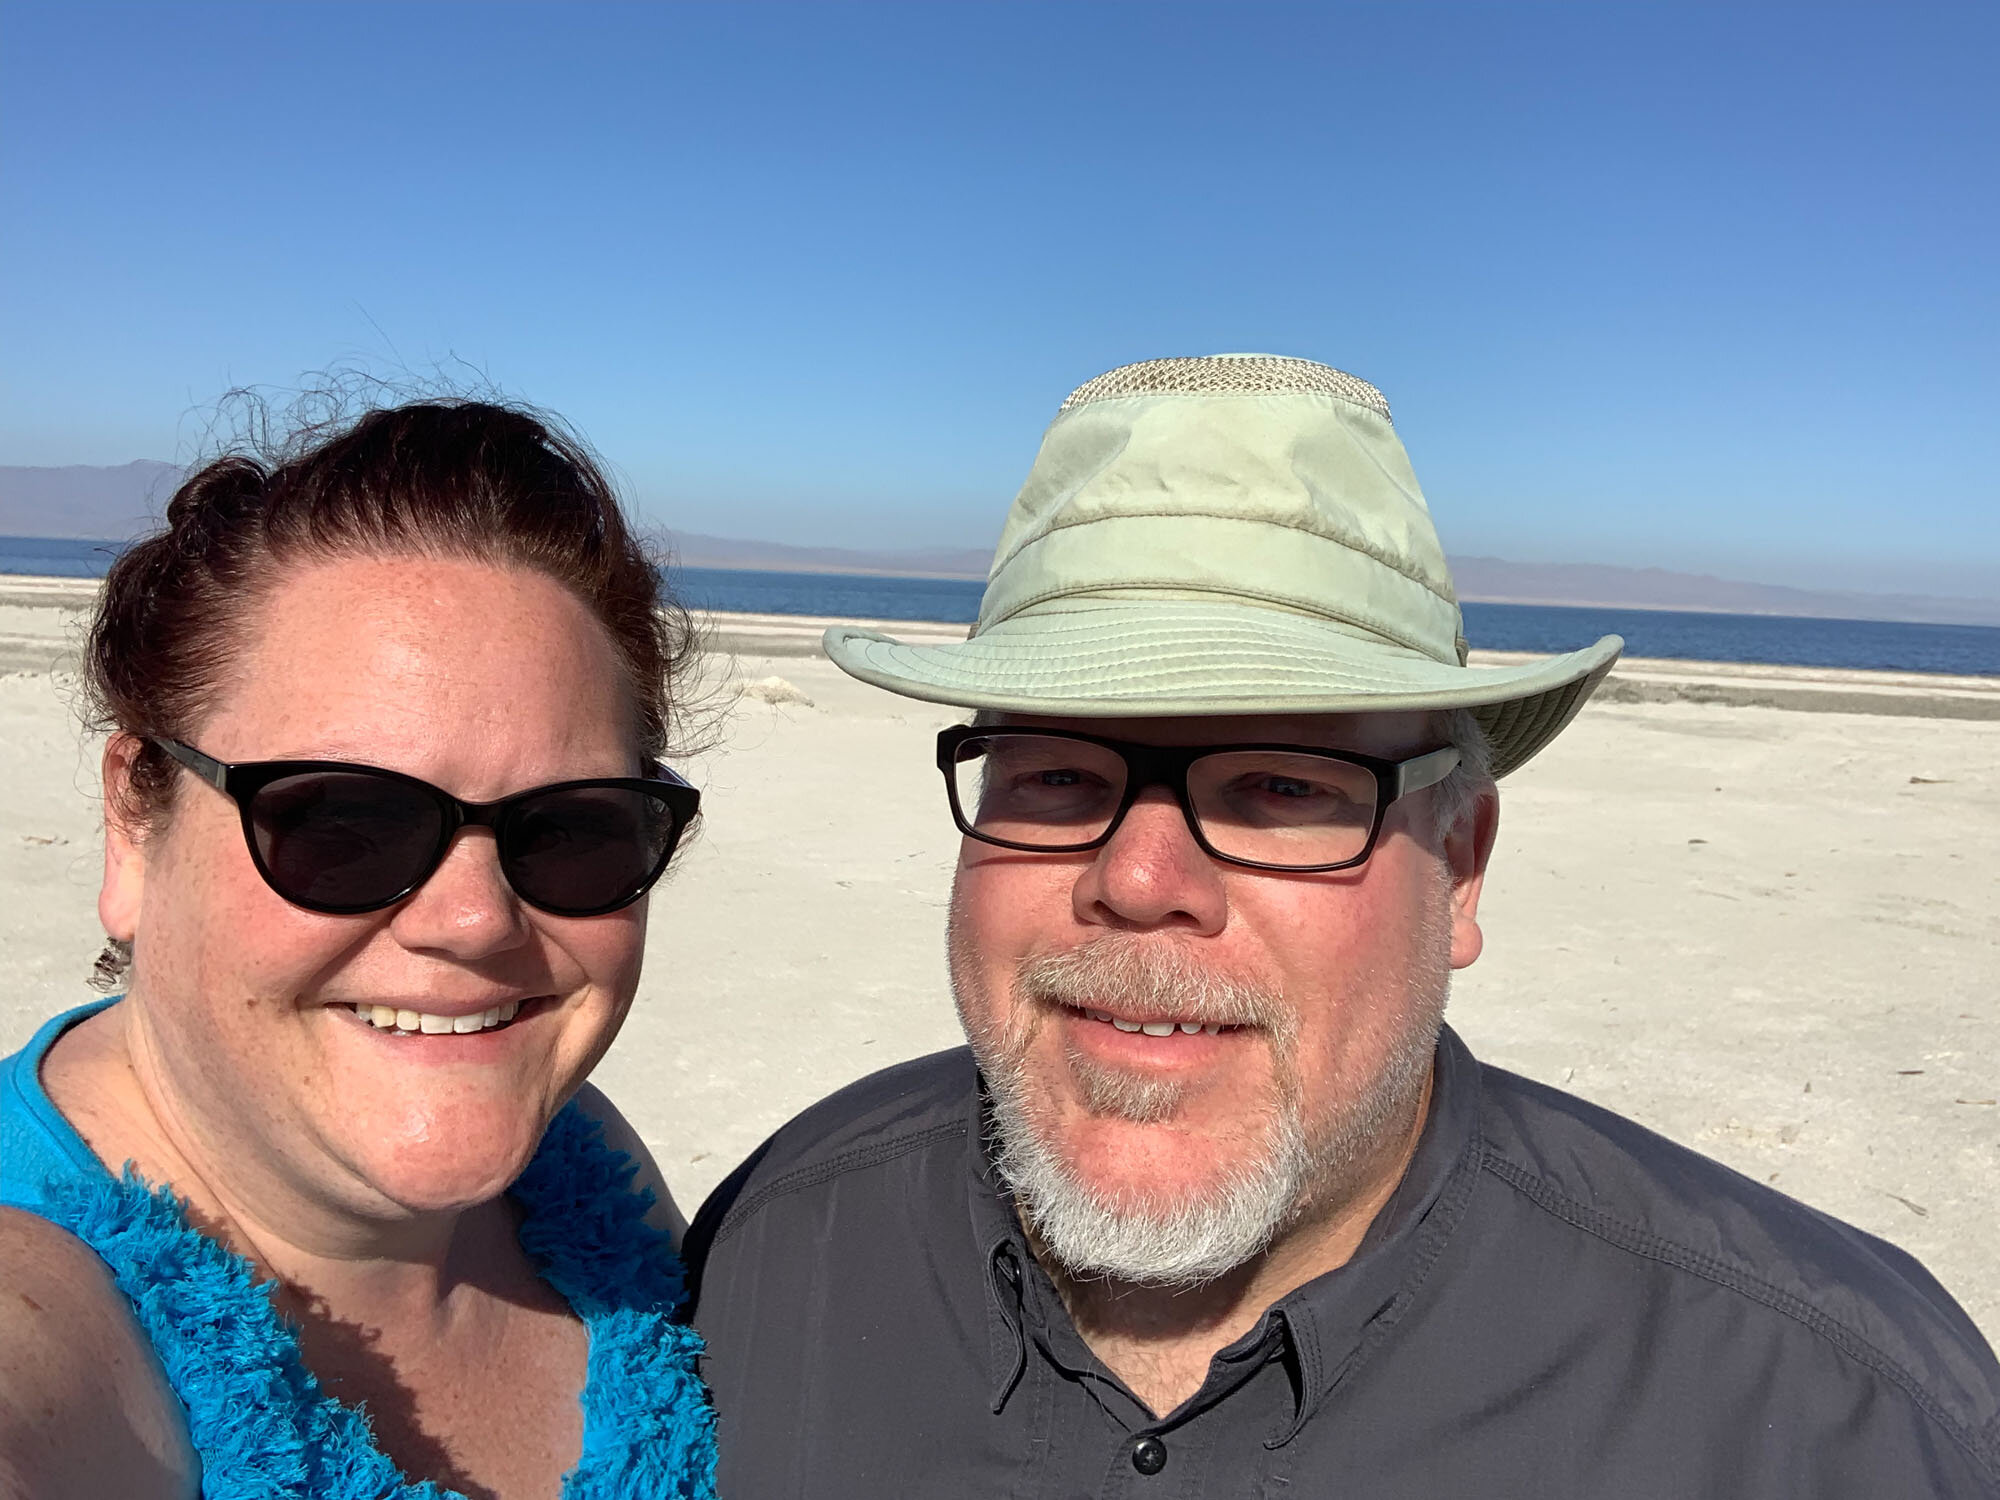 Beth and I looking a little squinty and sun-kissed at the Salton Sea.